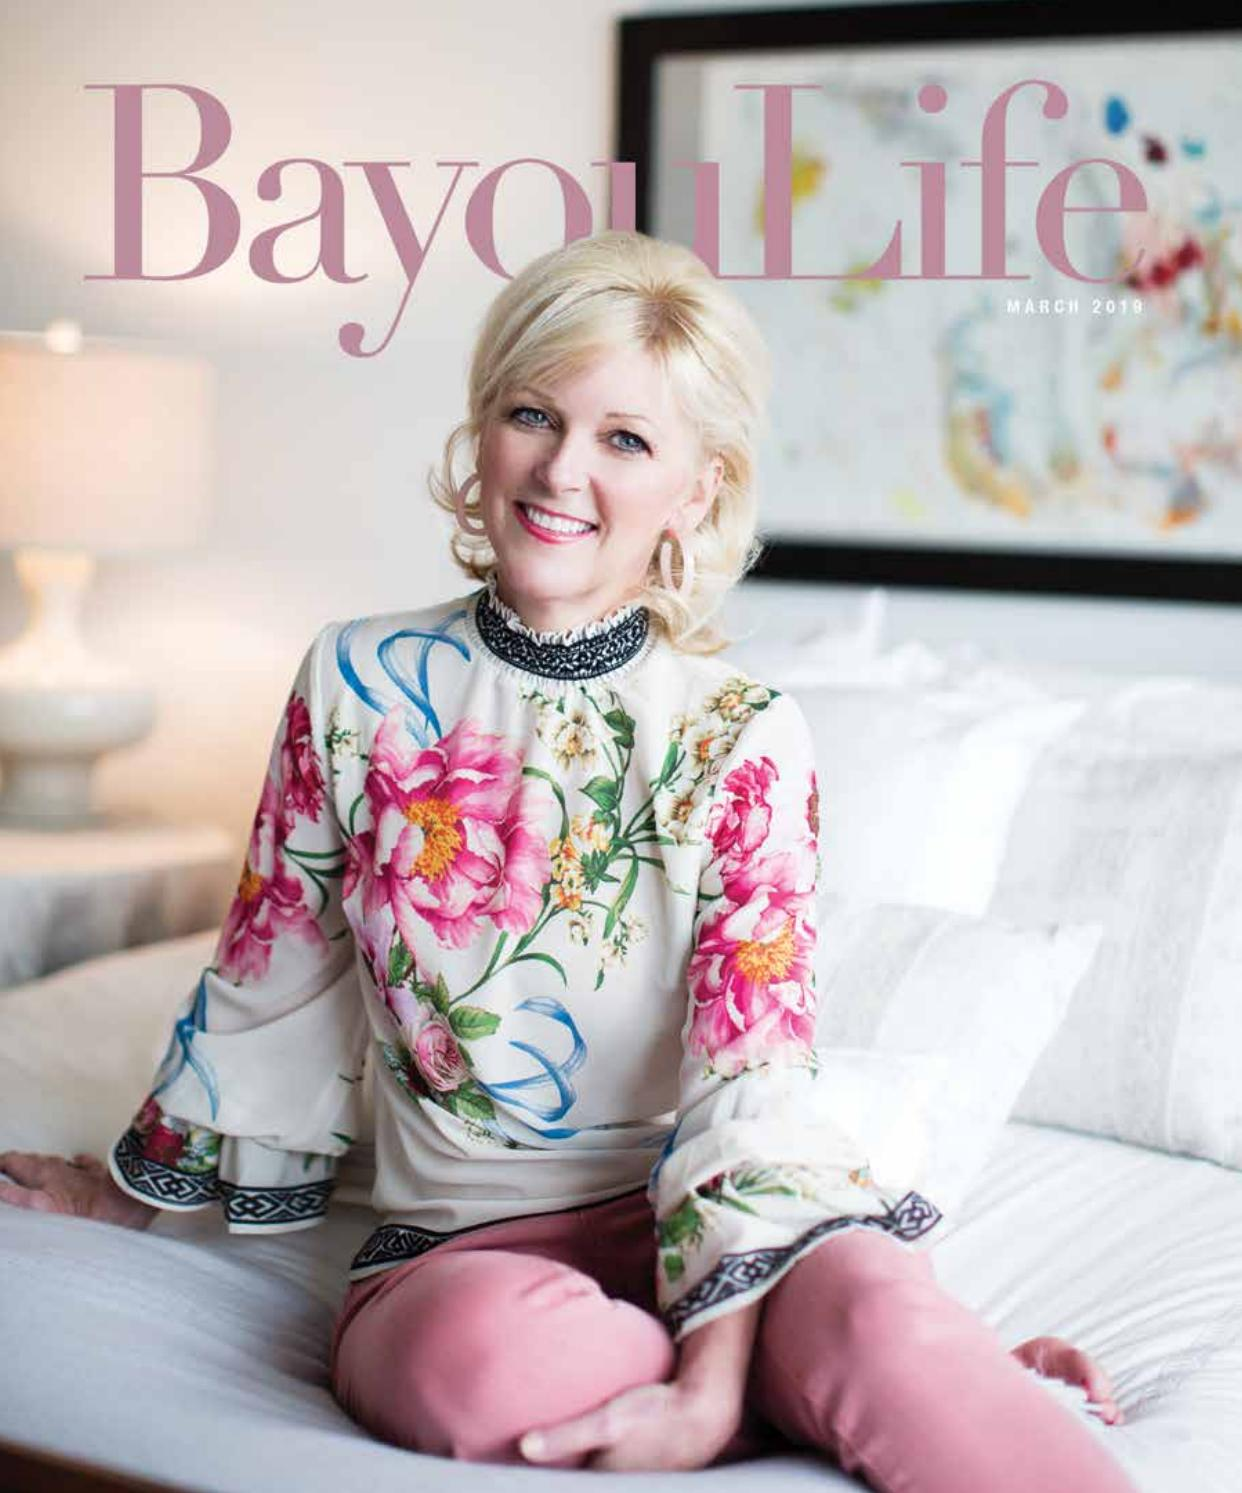 c61db0a414e BayouLIfe March 2019 by BayouLife Magazine - issuu